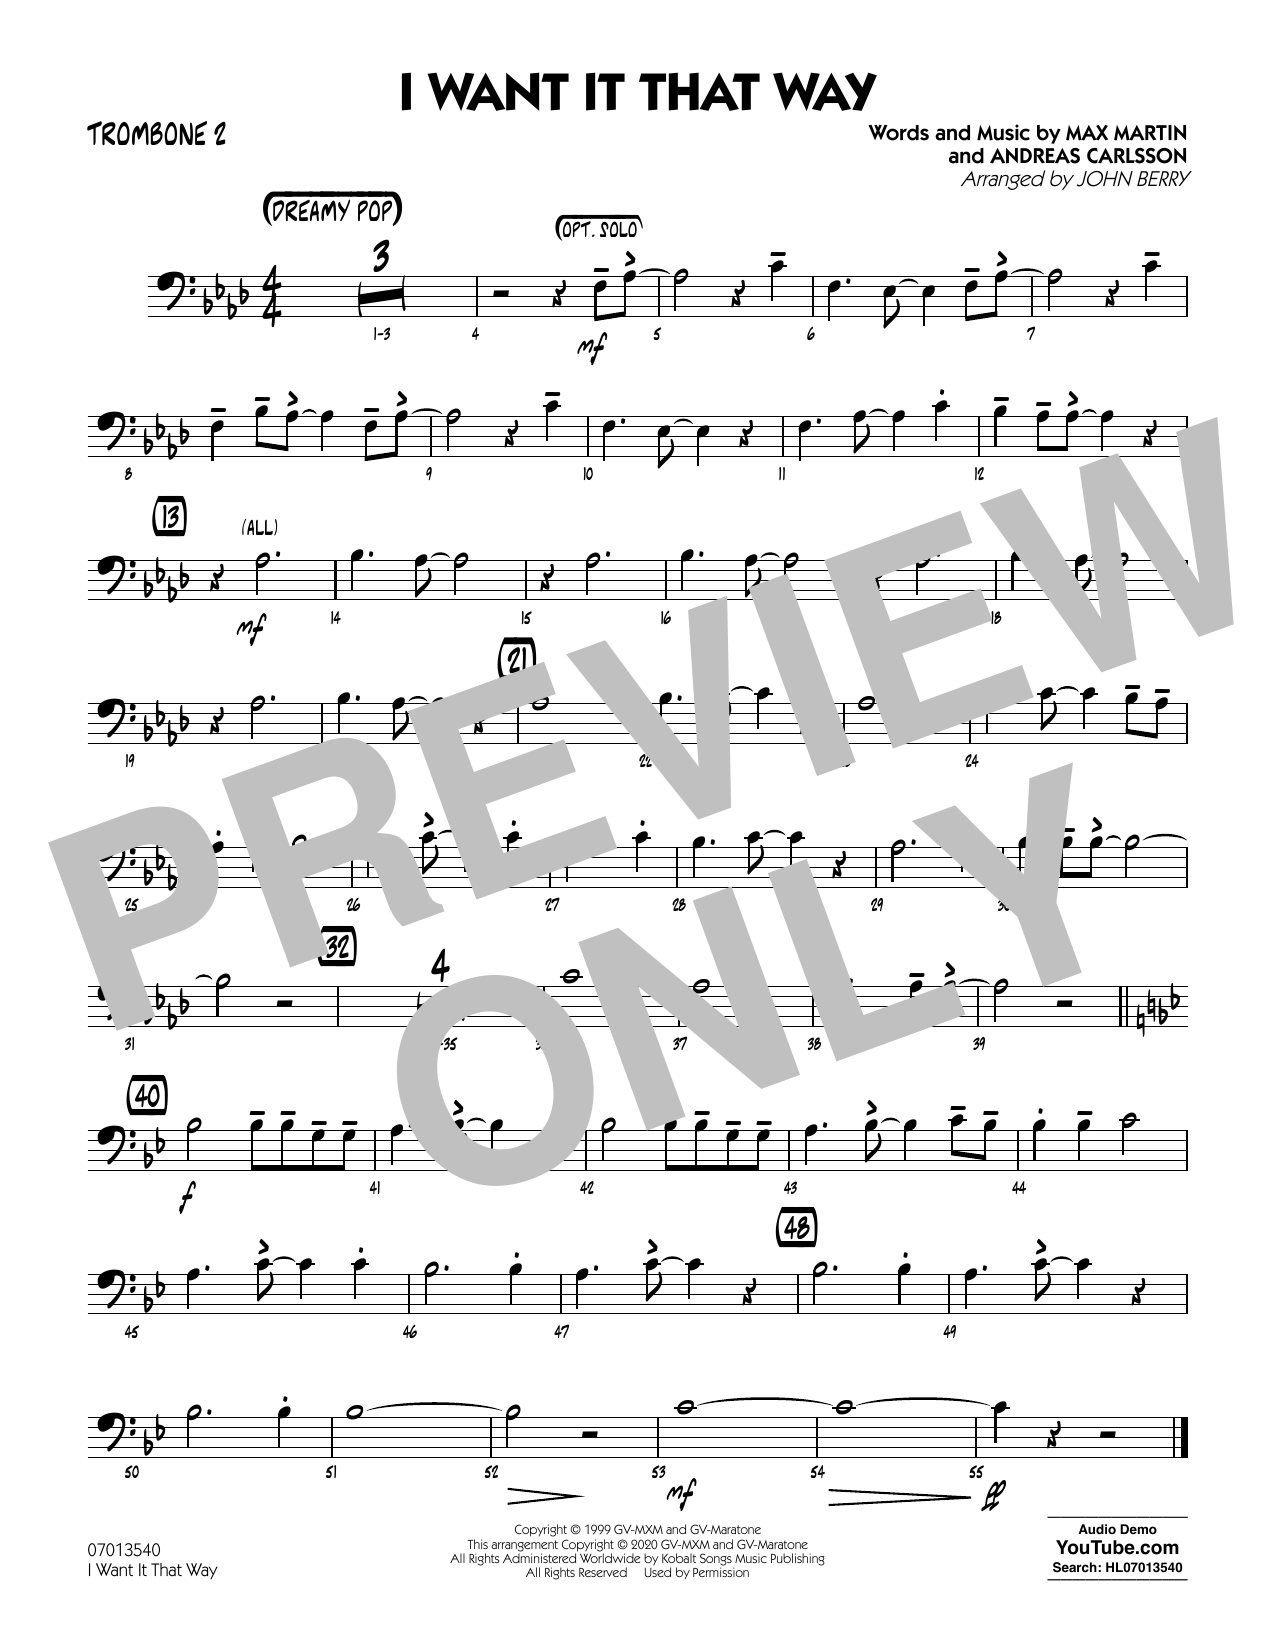 I Want It That Way (arr. John Berry) - Trombone 2 Sheet Music